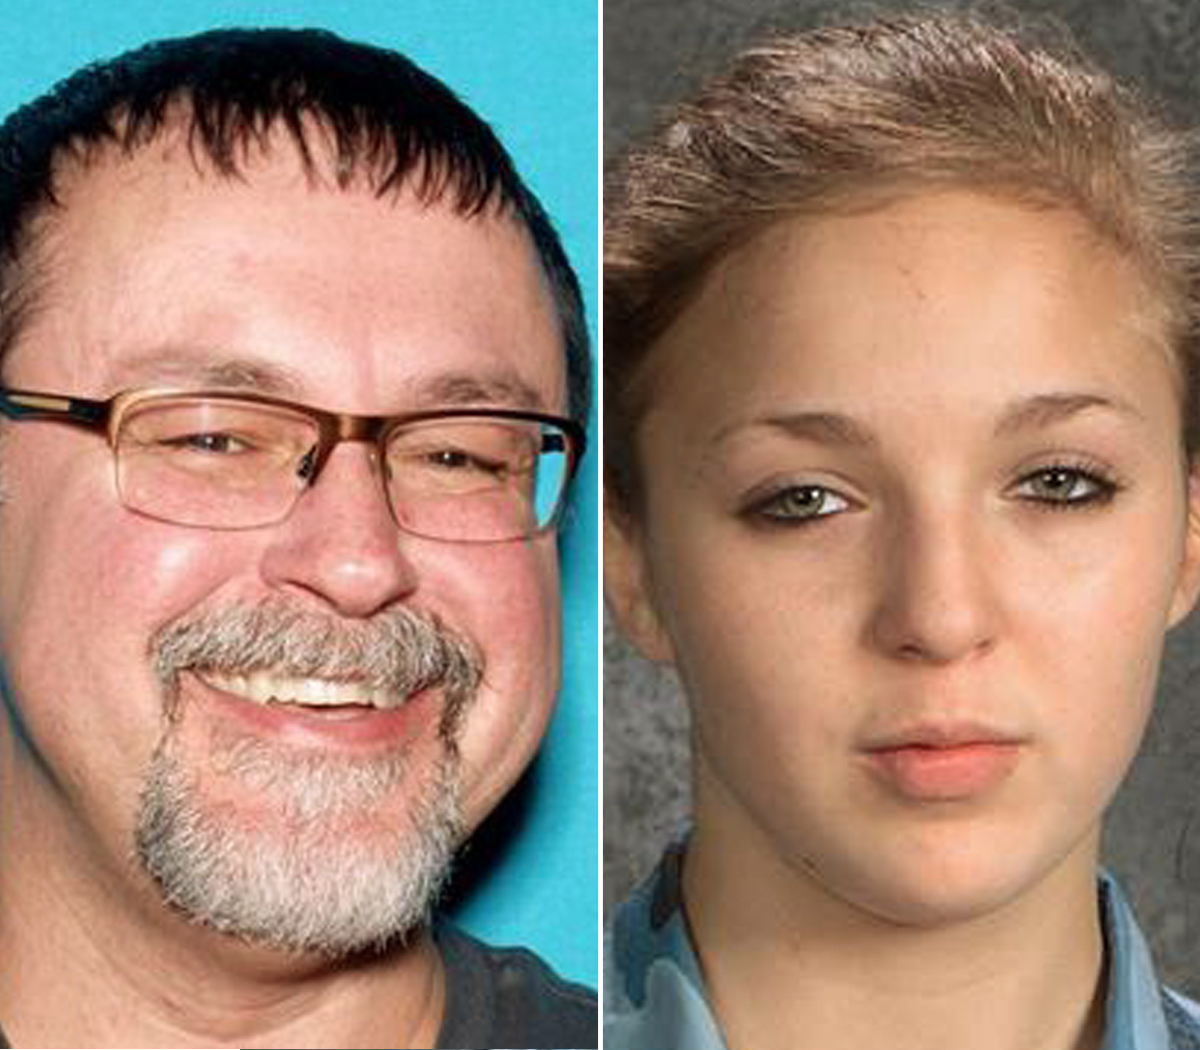 Urgent-Plea-in-Search-for-Missing-Tennessee-Teen